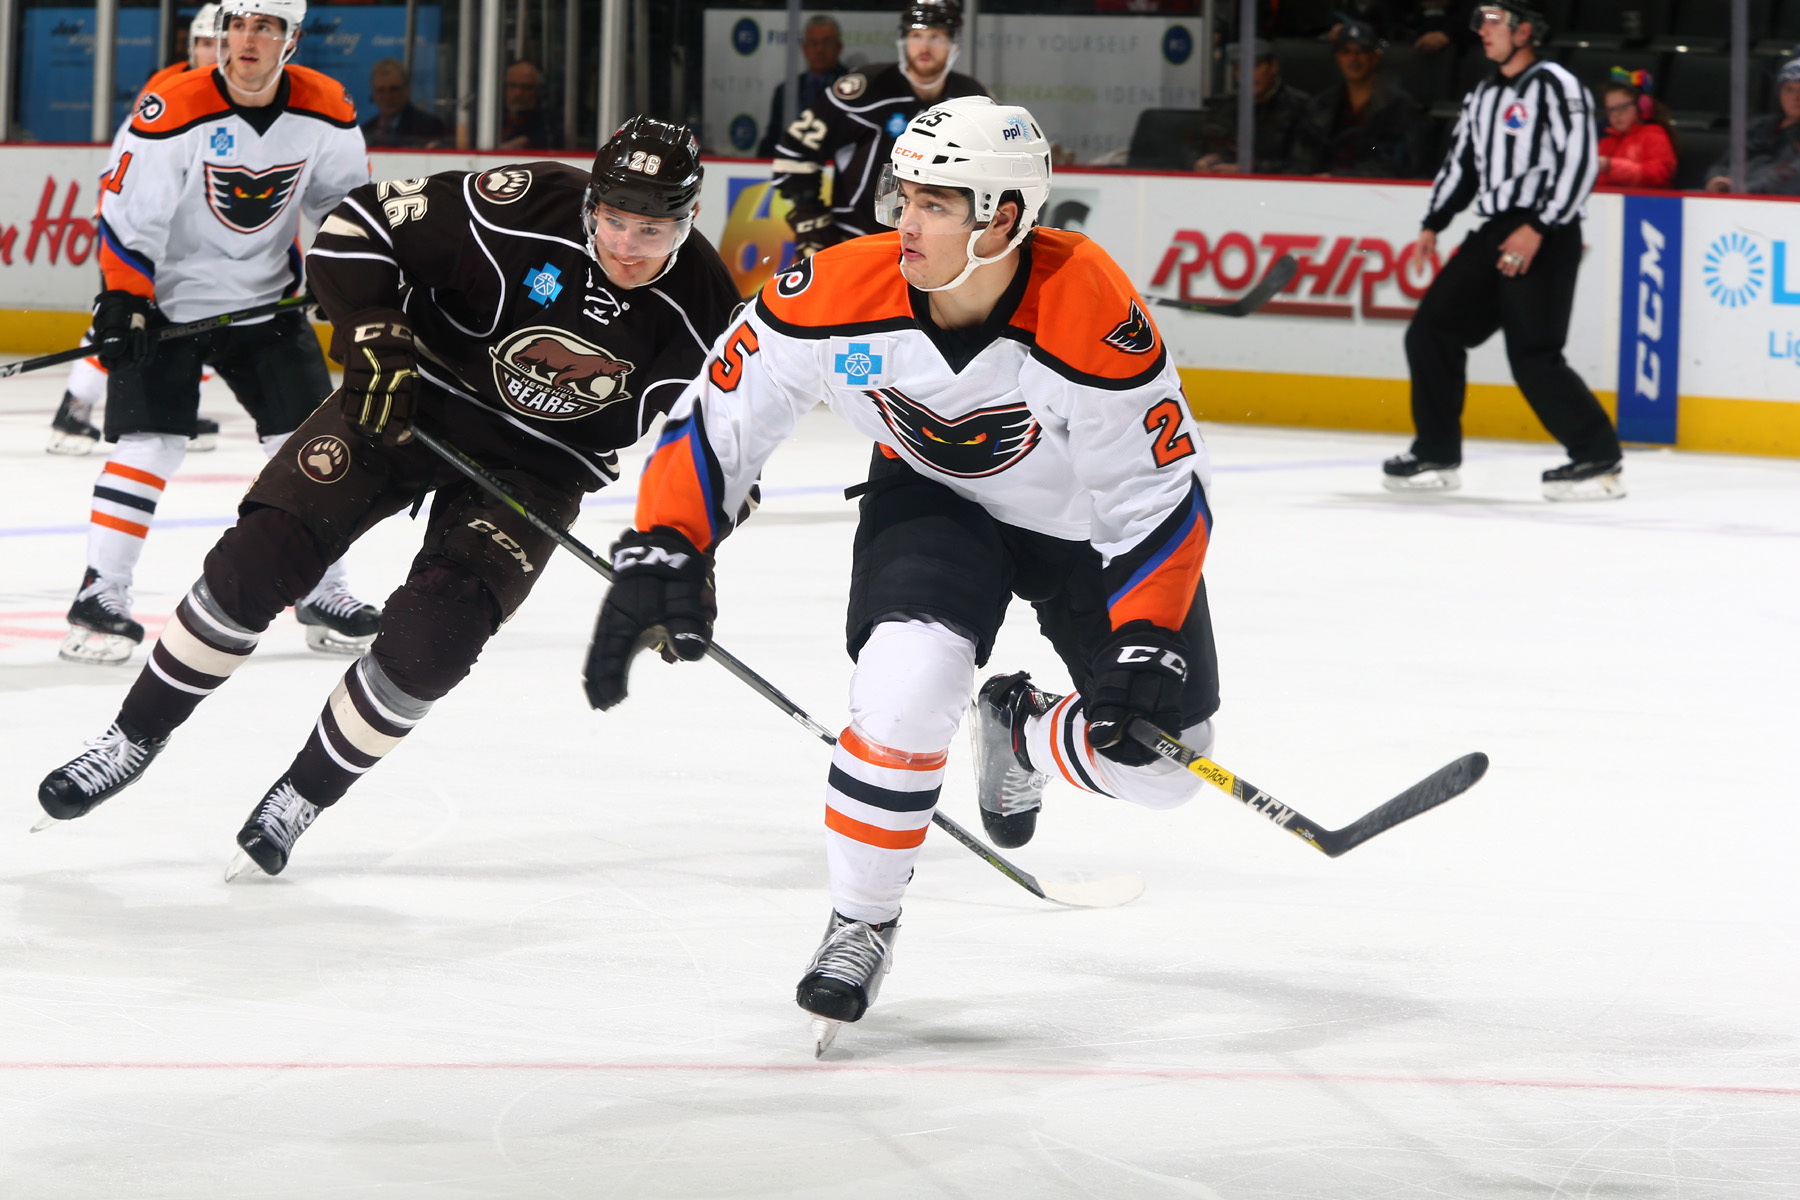 D Frank Hora Recalled from Reading Royals